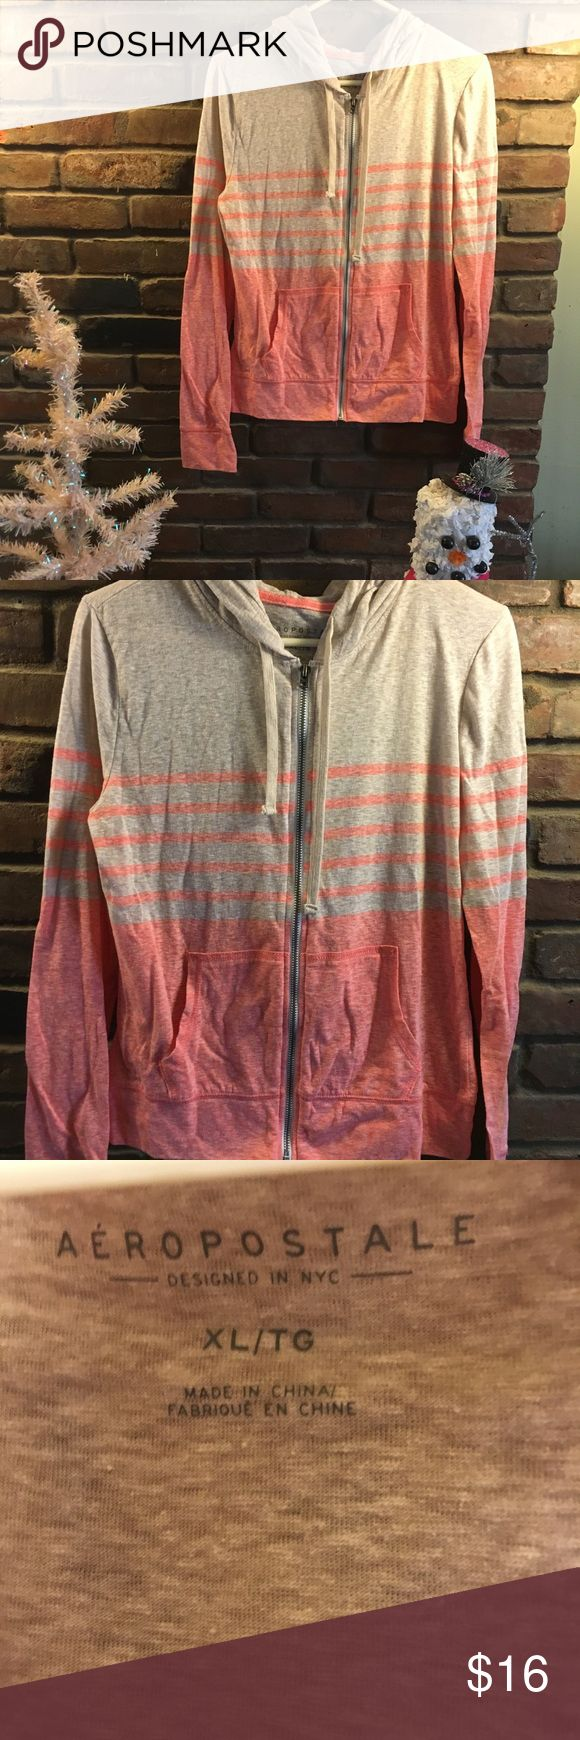 ‼️NEW LISTING‼️ 🍑Peach and nude hoodie🍑 Peach and nude lightweight hoodie. LIKE NEW, only worn twice. Does not fit true to size. Says XL but fits more like a medium. Very comfortable and perfect for spring☀️ another must have piece to add to your closet. HUGE discounts on bundles and 🆓 gifts with purchases🛍 please feel free to comment questions and offers are welcomed❤️ Aeropostale Tops Sweatshirts & Hoodies